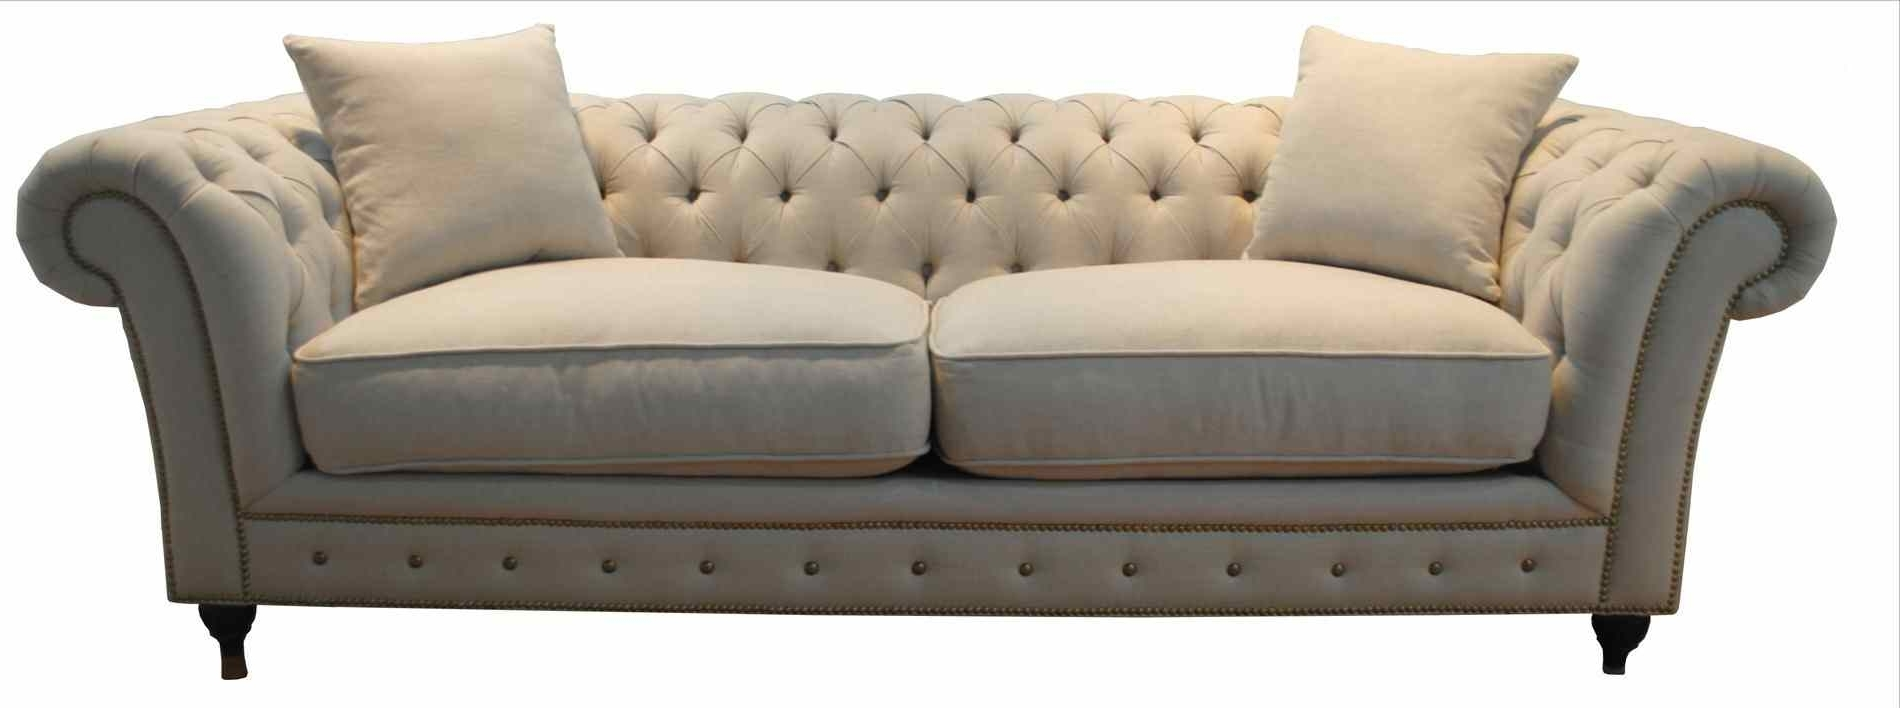 Popular French Style Sofas For Sofa : Room French Sofa Set Furniture Style Various Fabric Color (View 15 of 20)